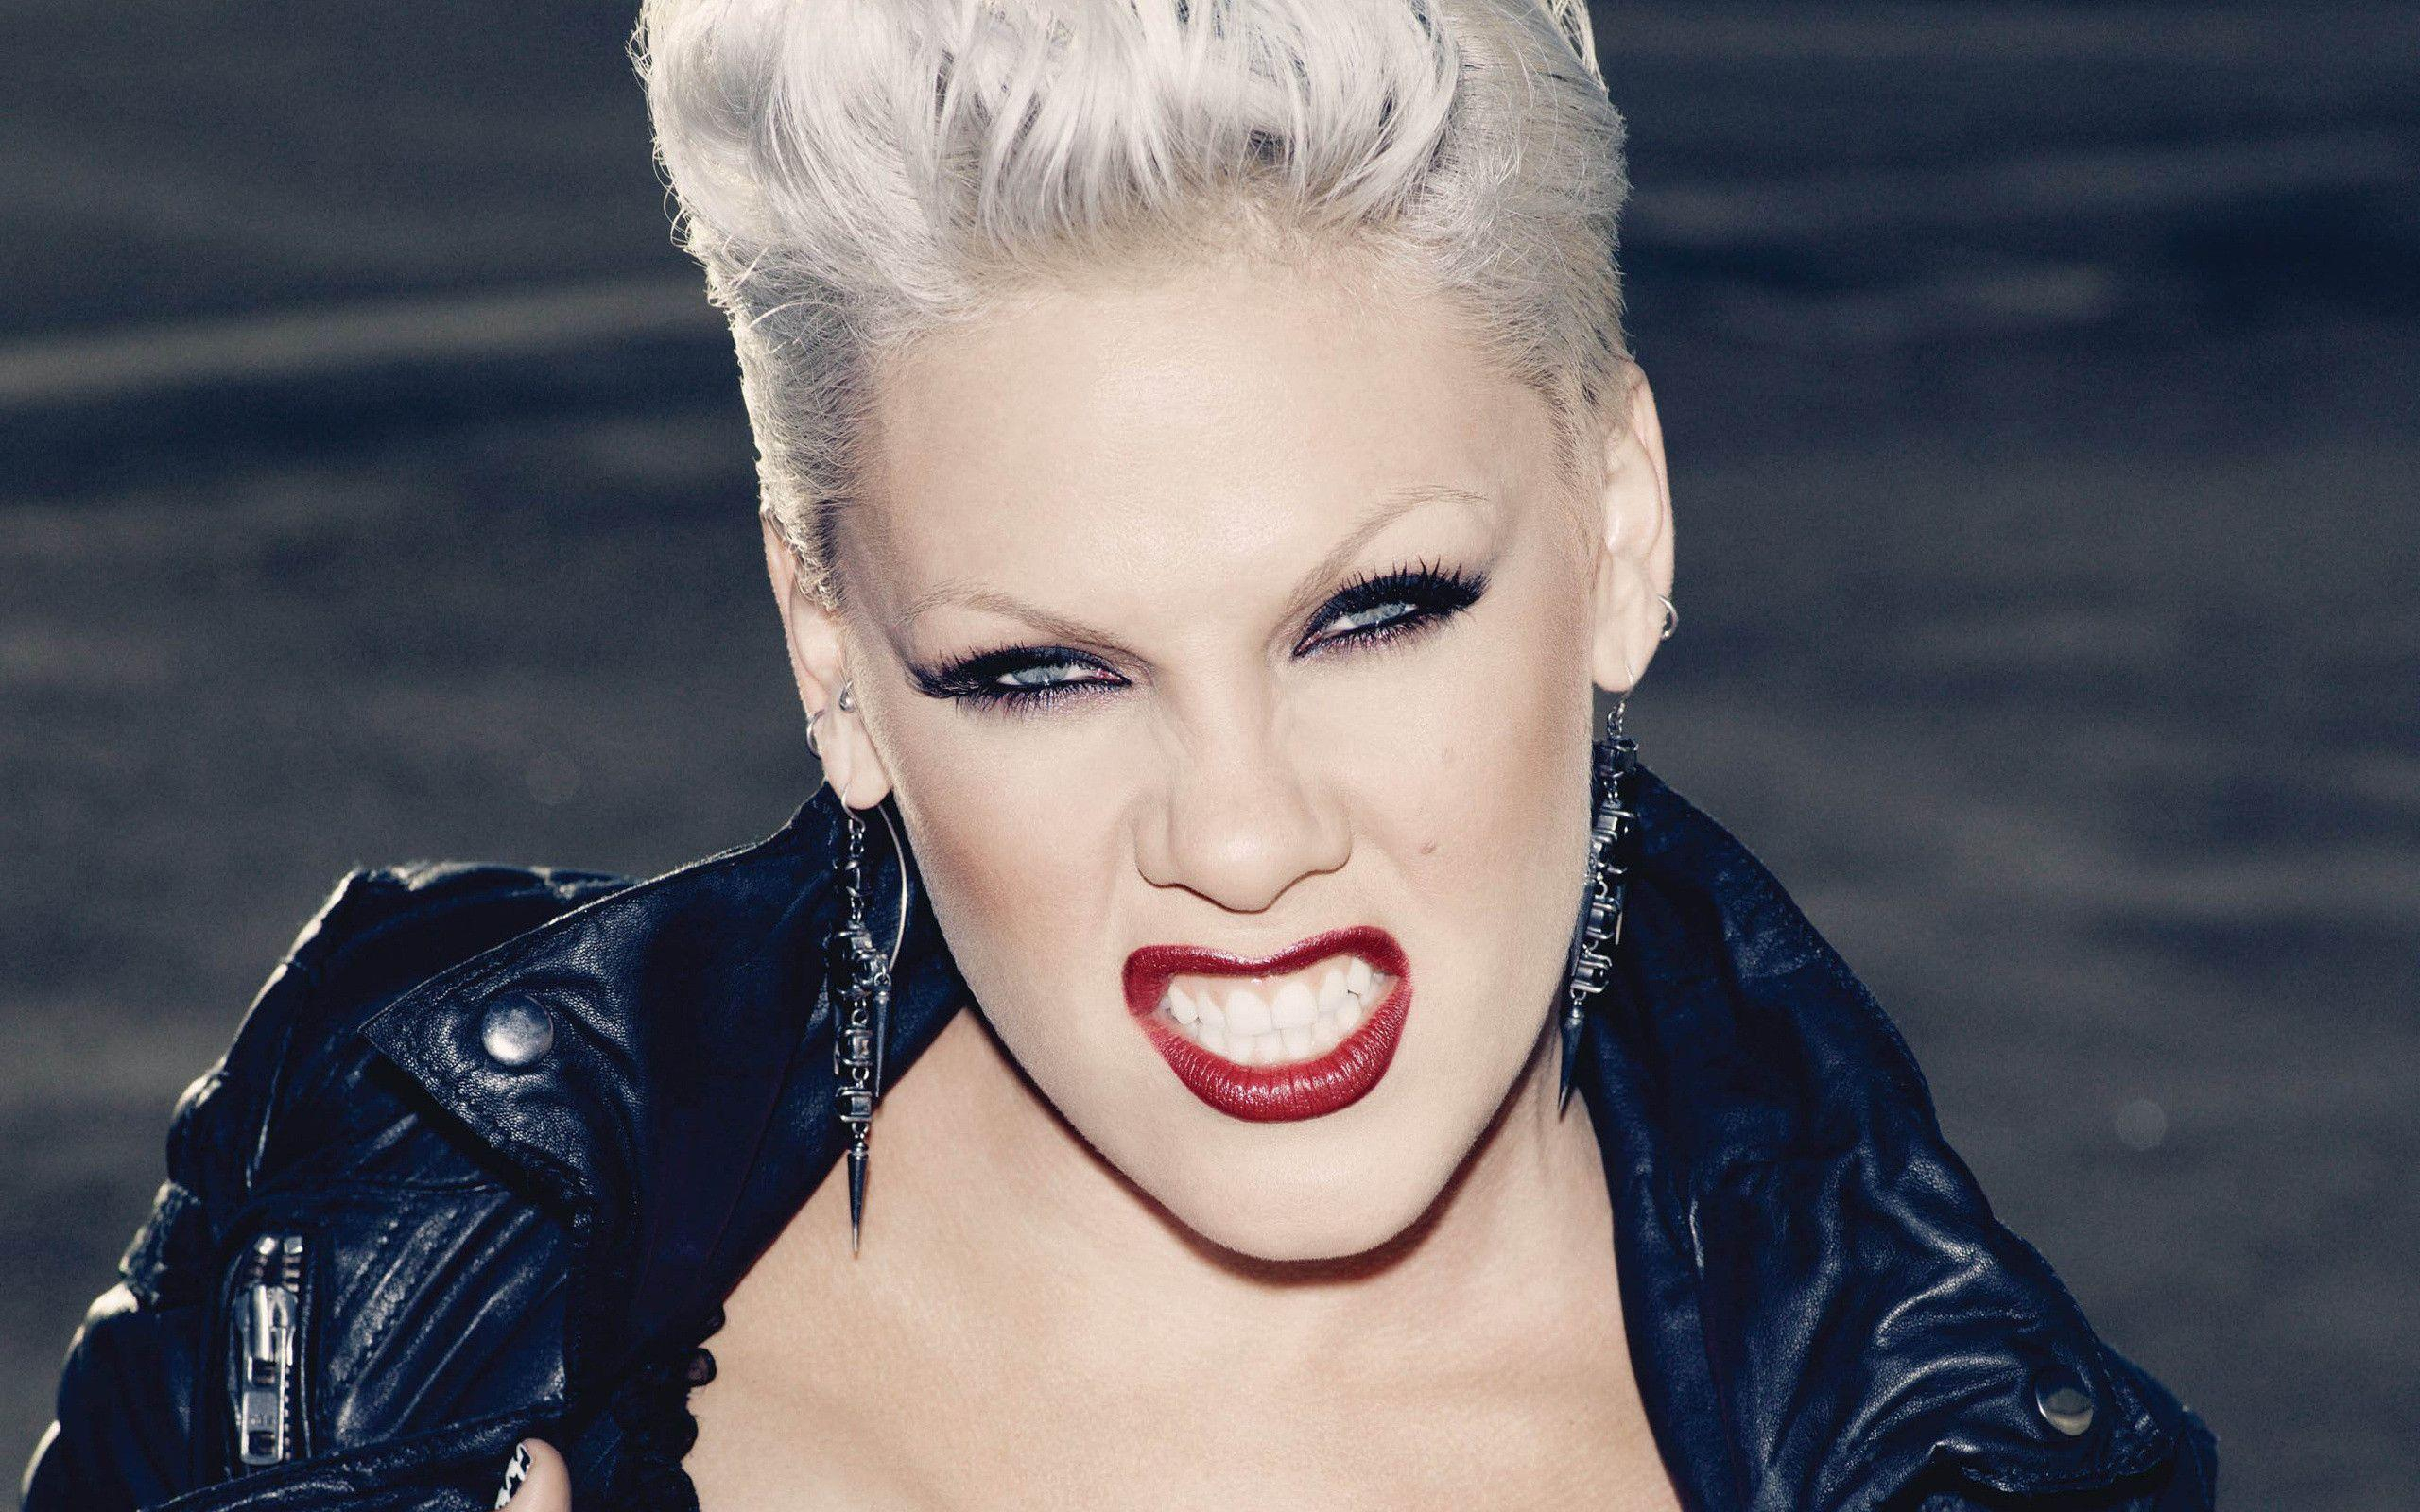 pink (singer) biography, husband, net worth, facts you need to know